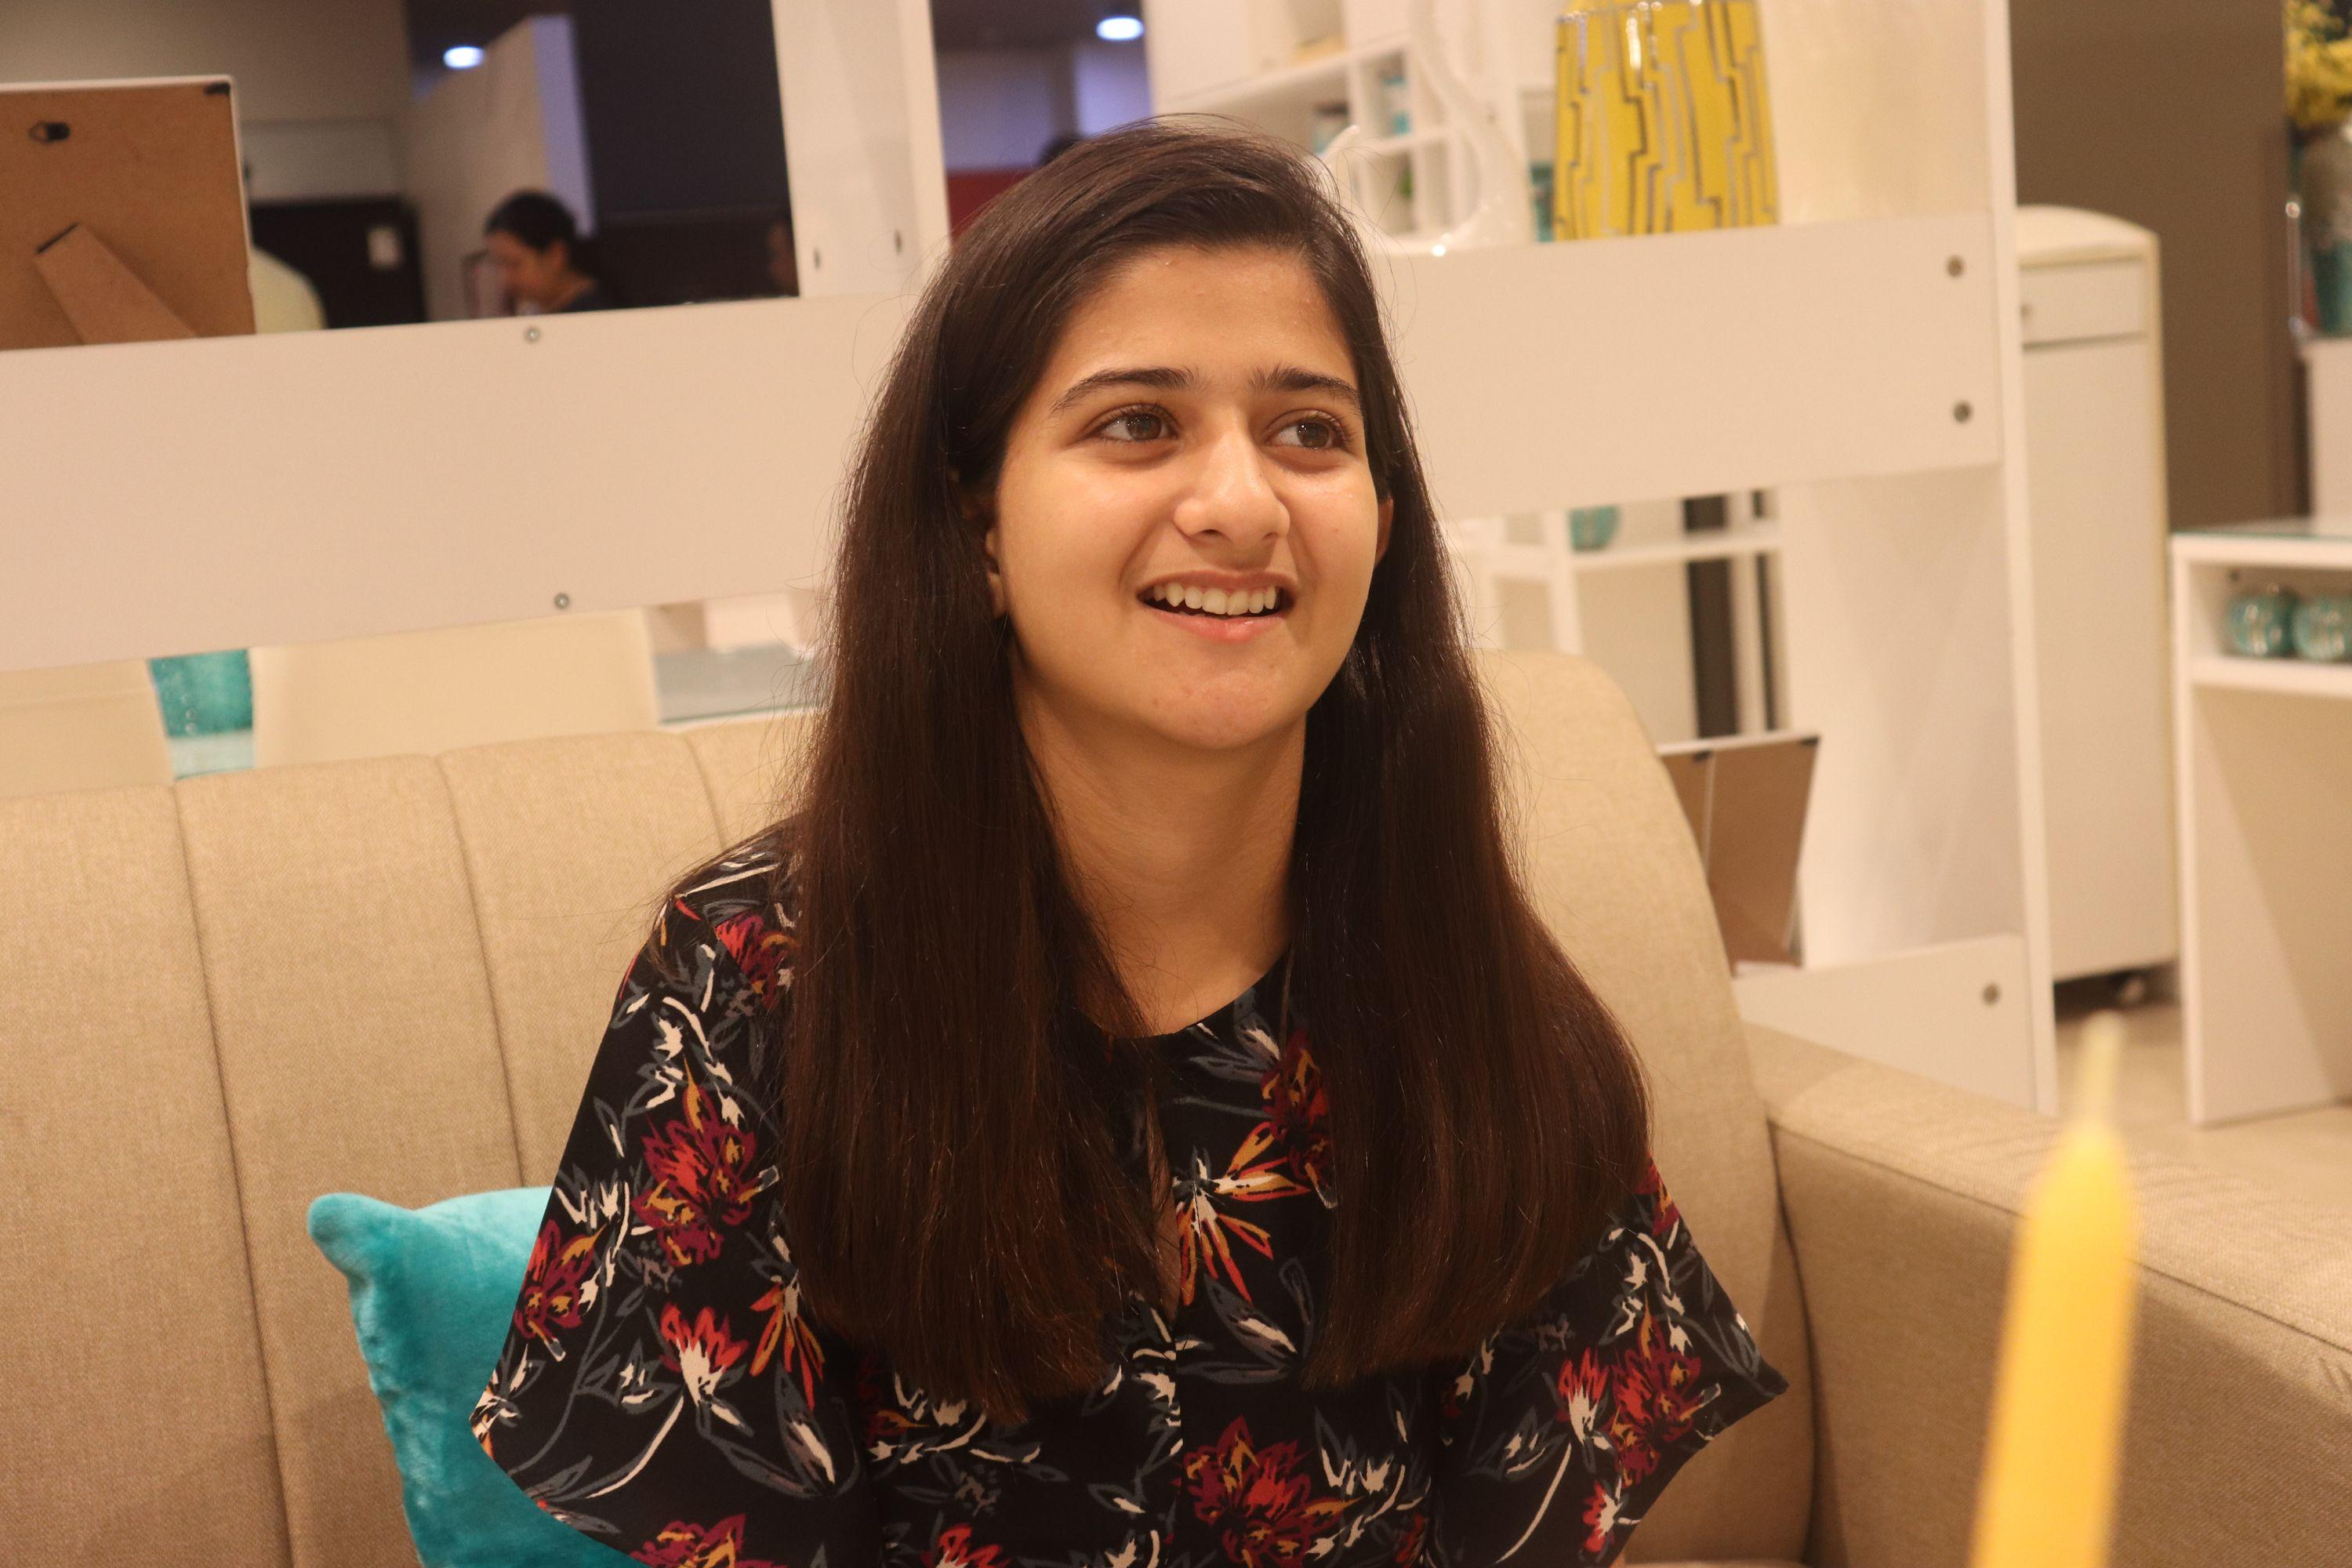 Divya Gandotra 16 Year's old Youtuber, who is best known for making videos about Tech Content and other stuff's.